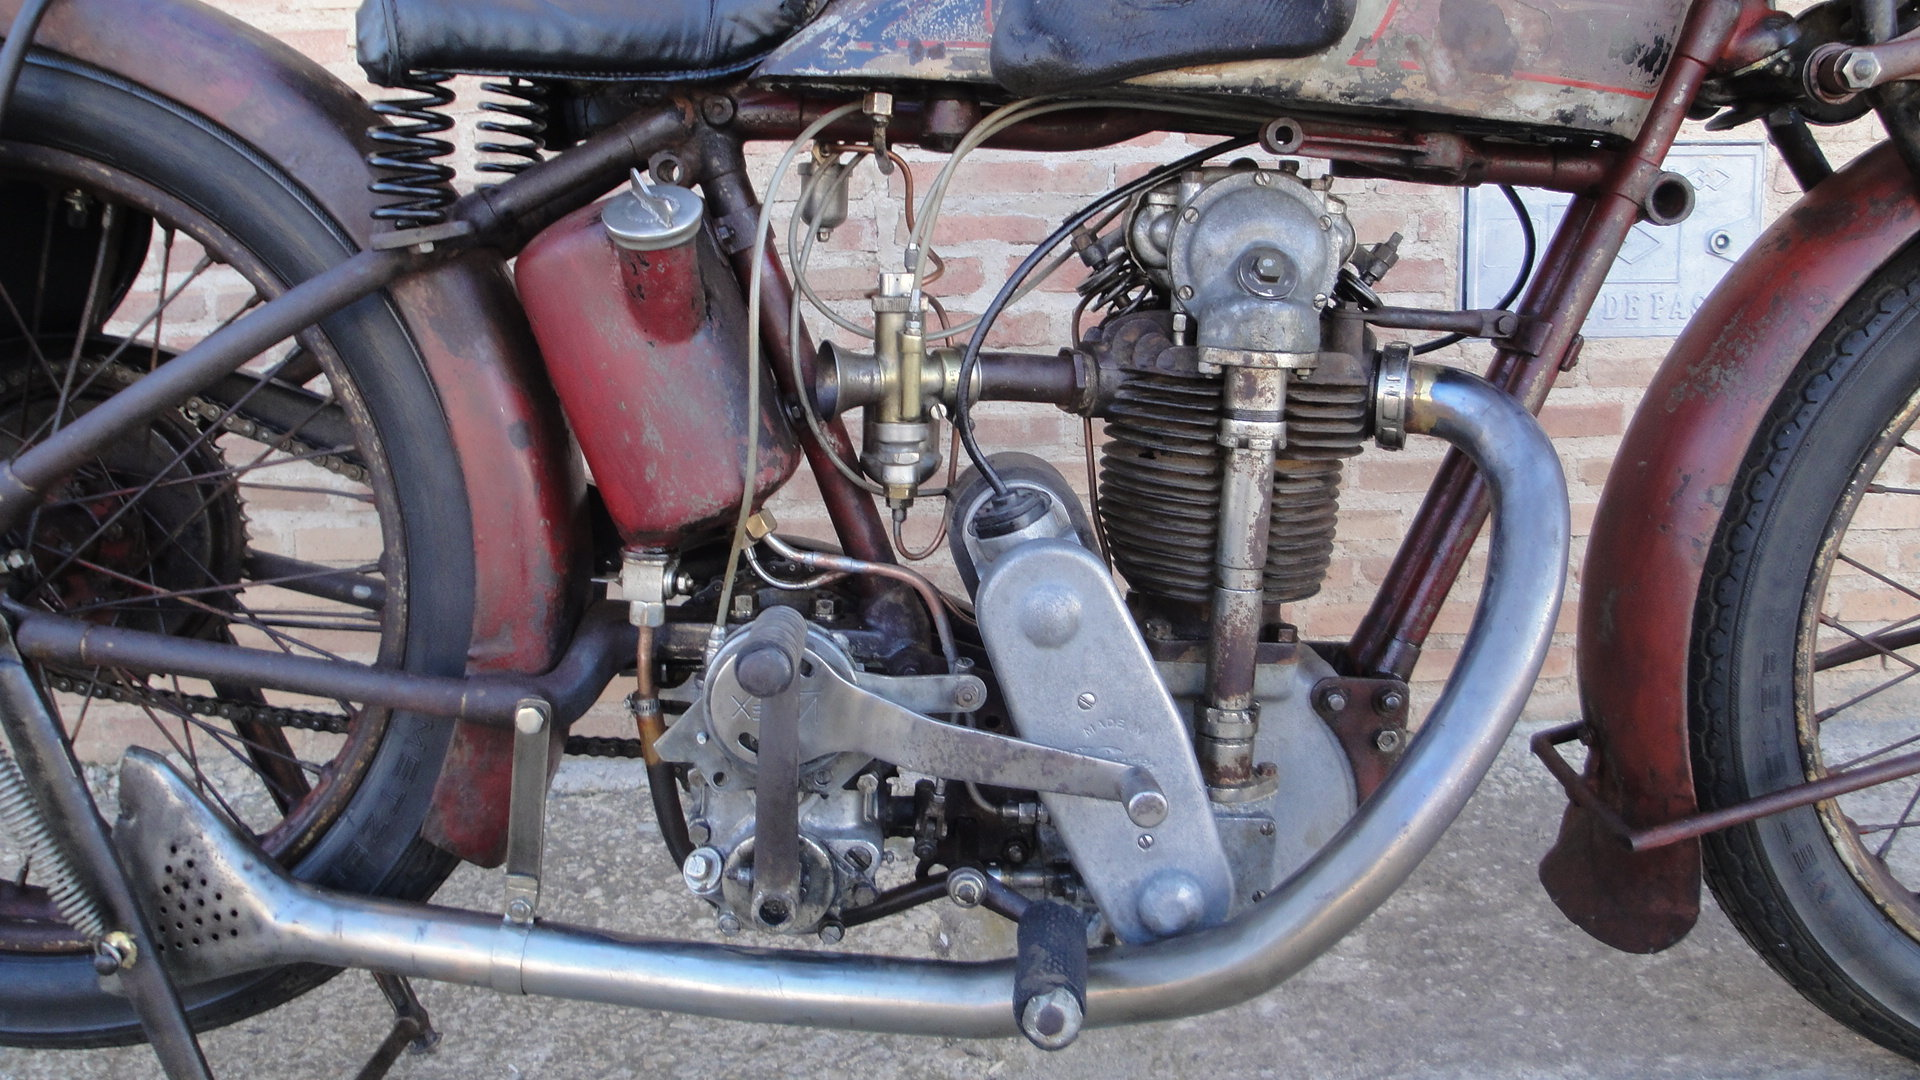 VELOCETTE KN 350cc OHC RACER YEAR 1929 For Sale (picture 3 of 6)